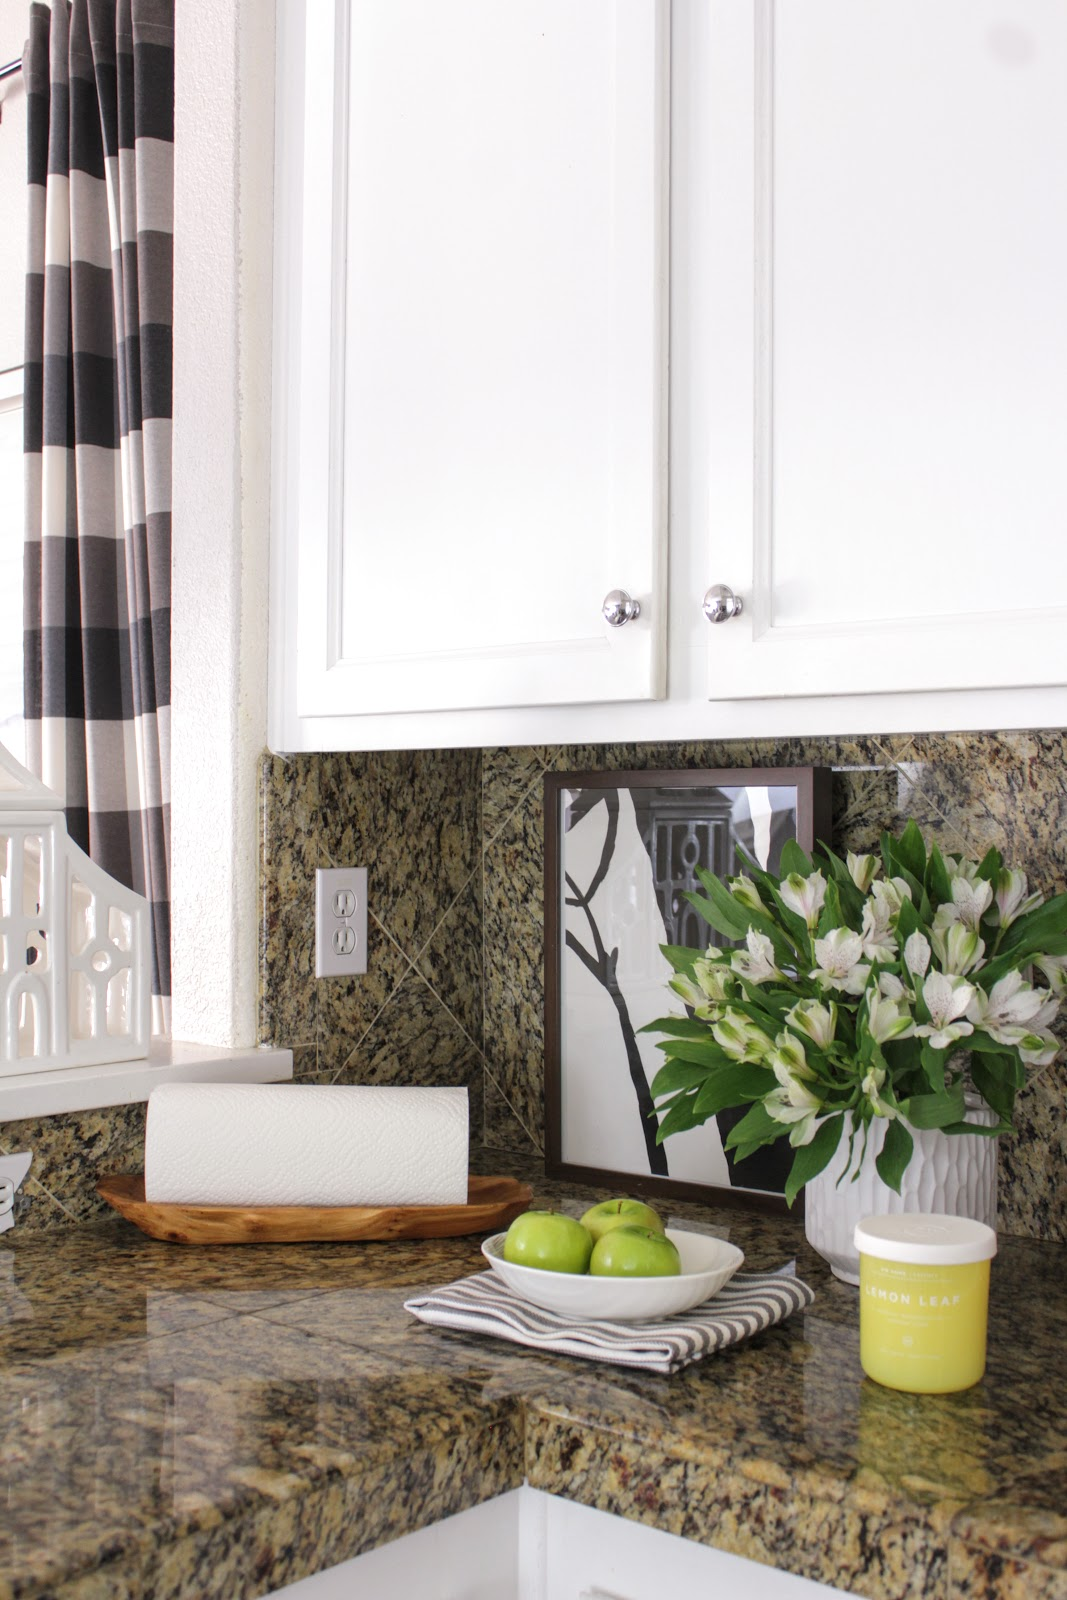 Oscar Bravo Home: 11 Things You Can Do RIGHT NOW To Make a Basic ...